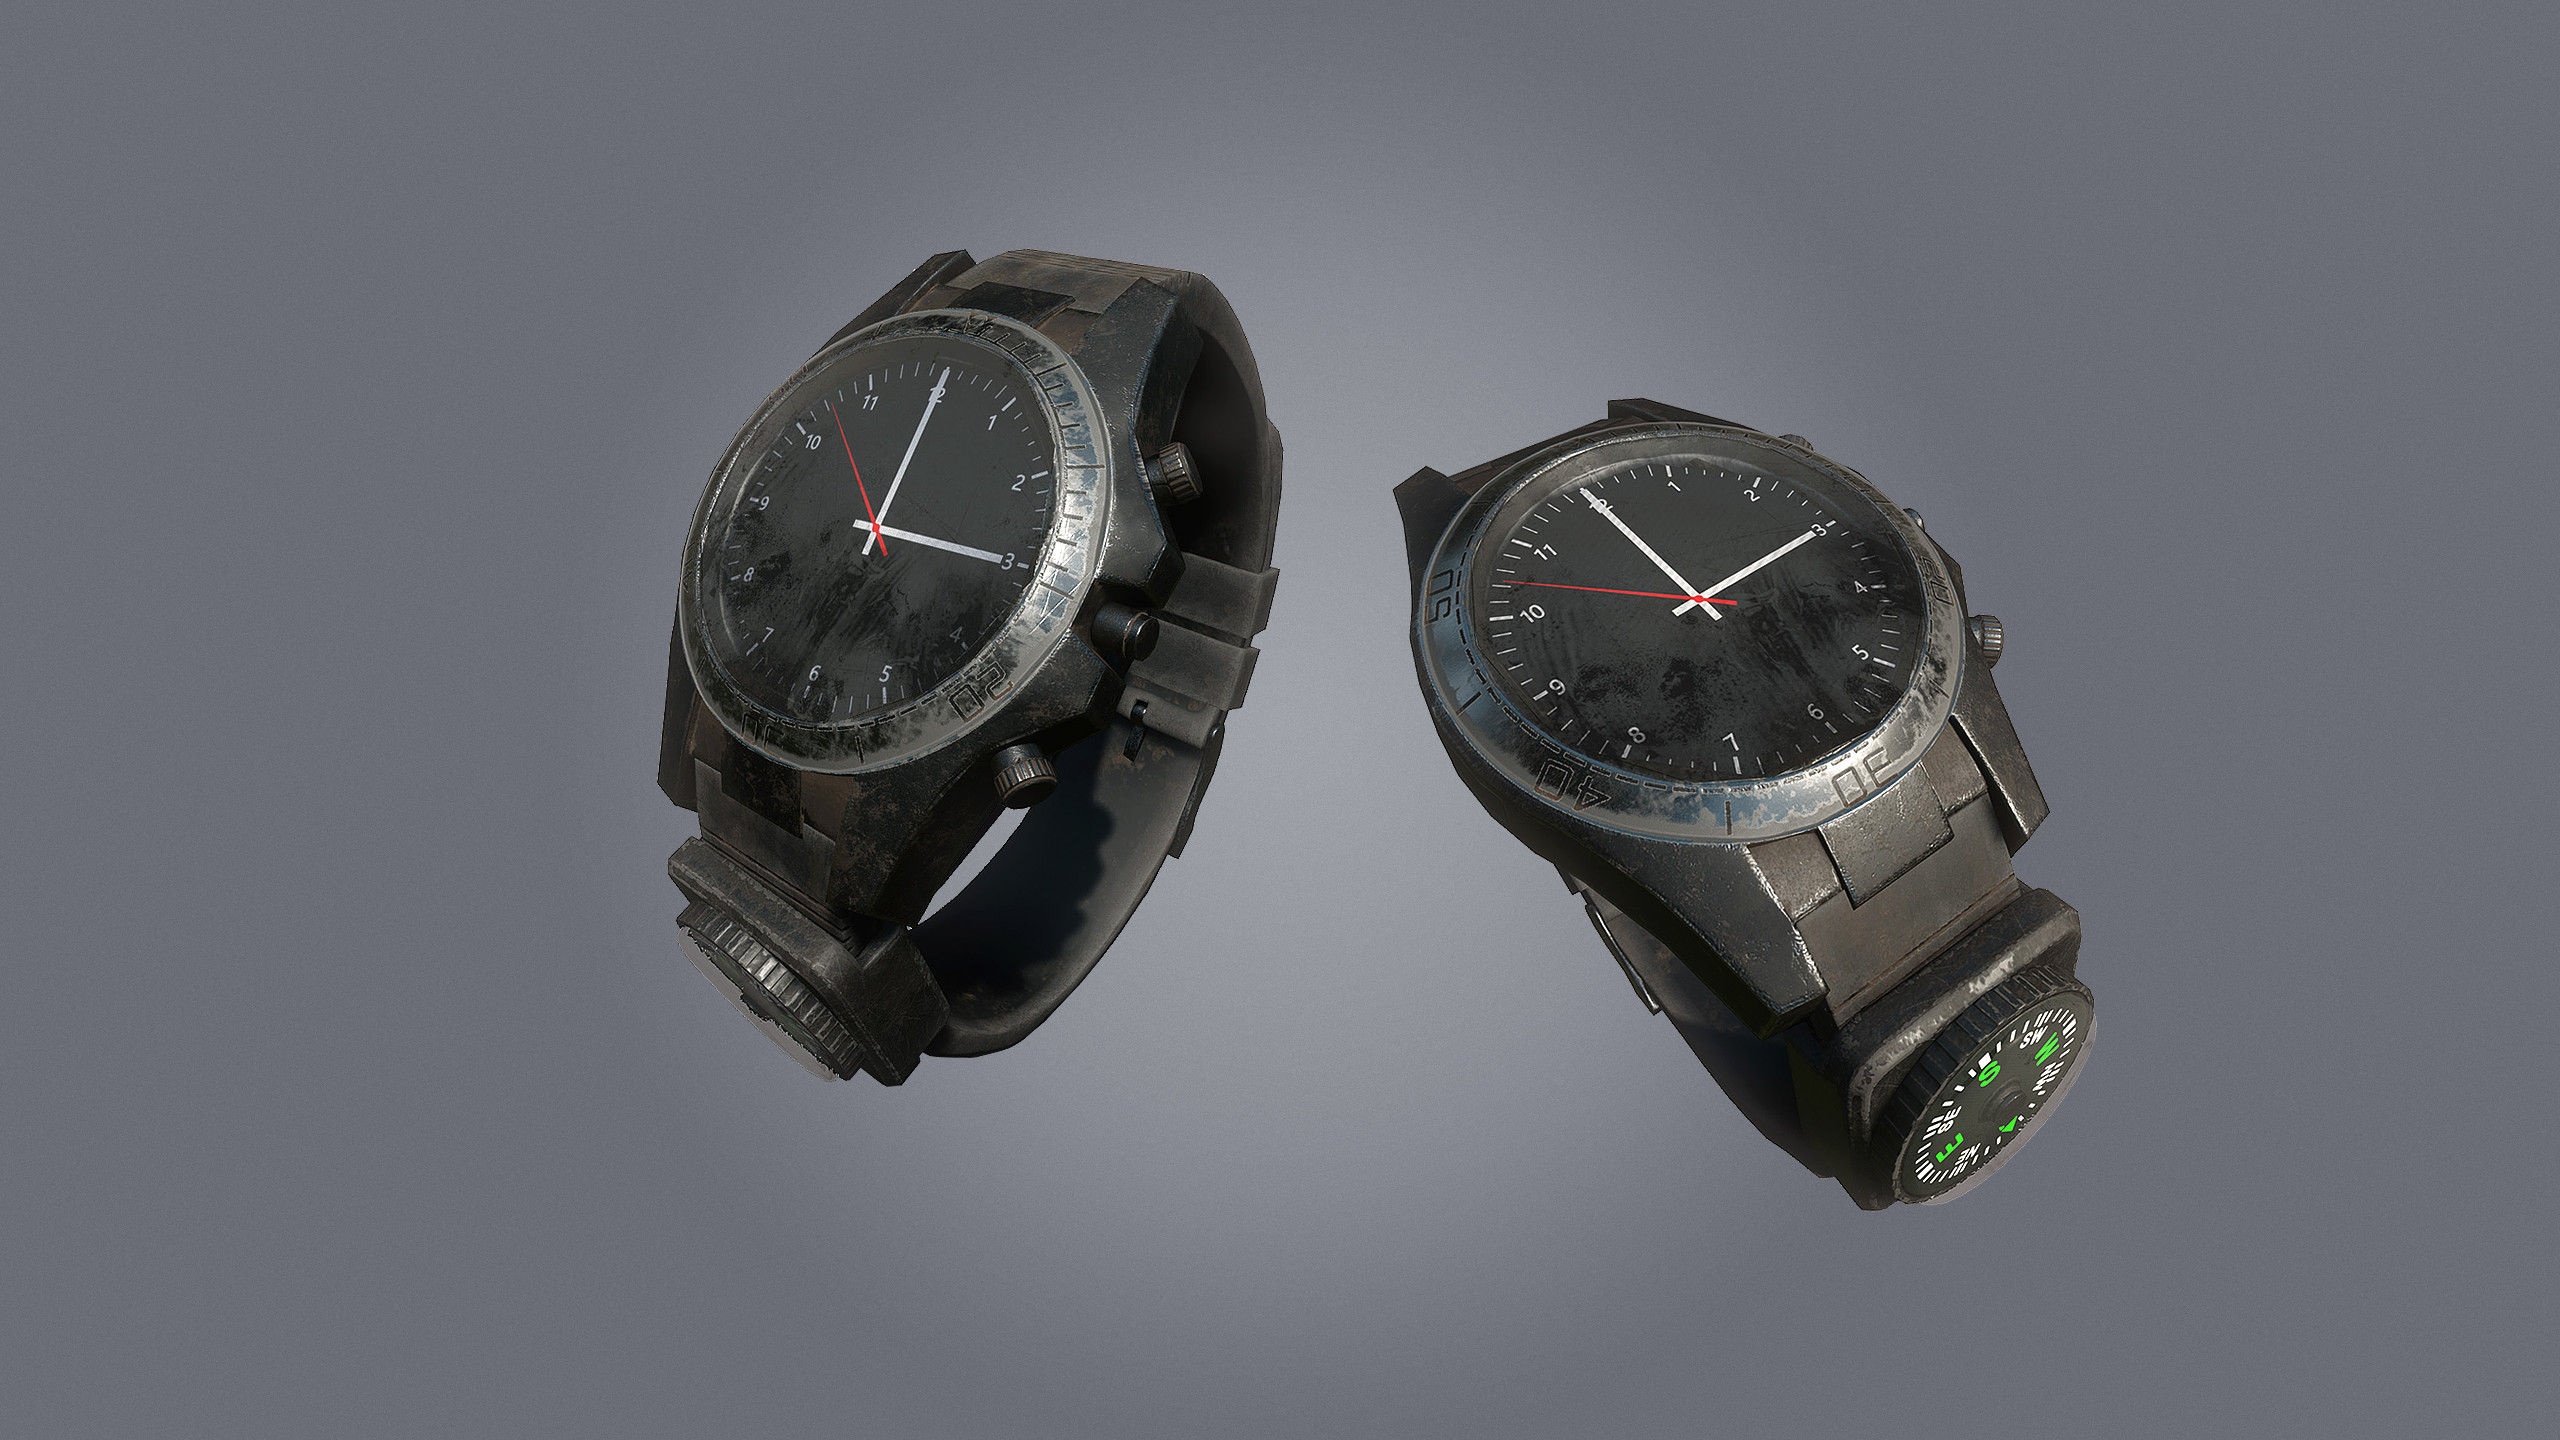 Watch/Compass Combo item, worn on the wrist.